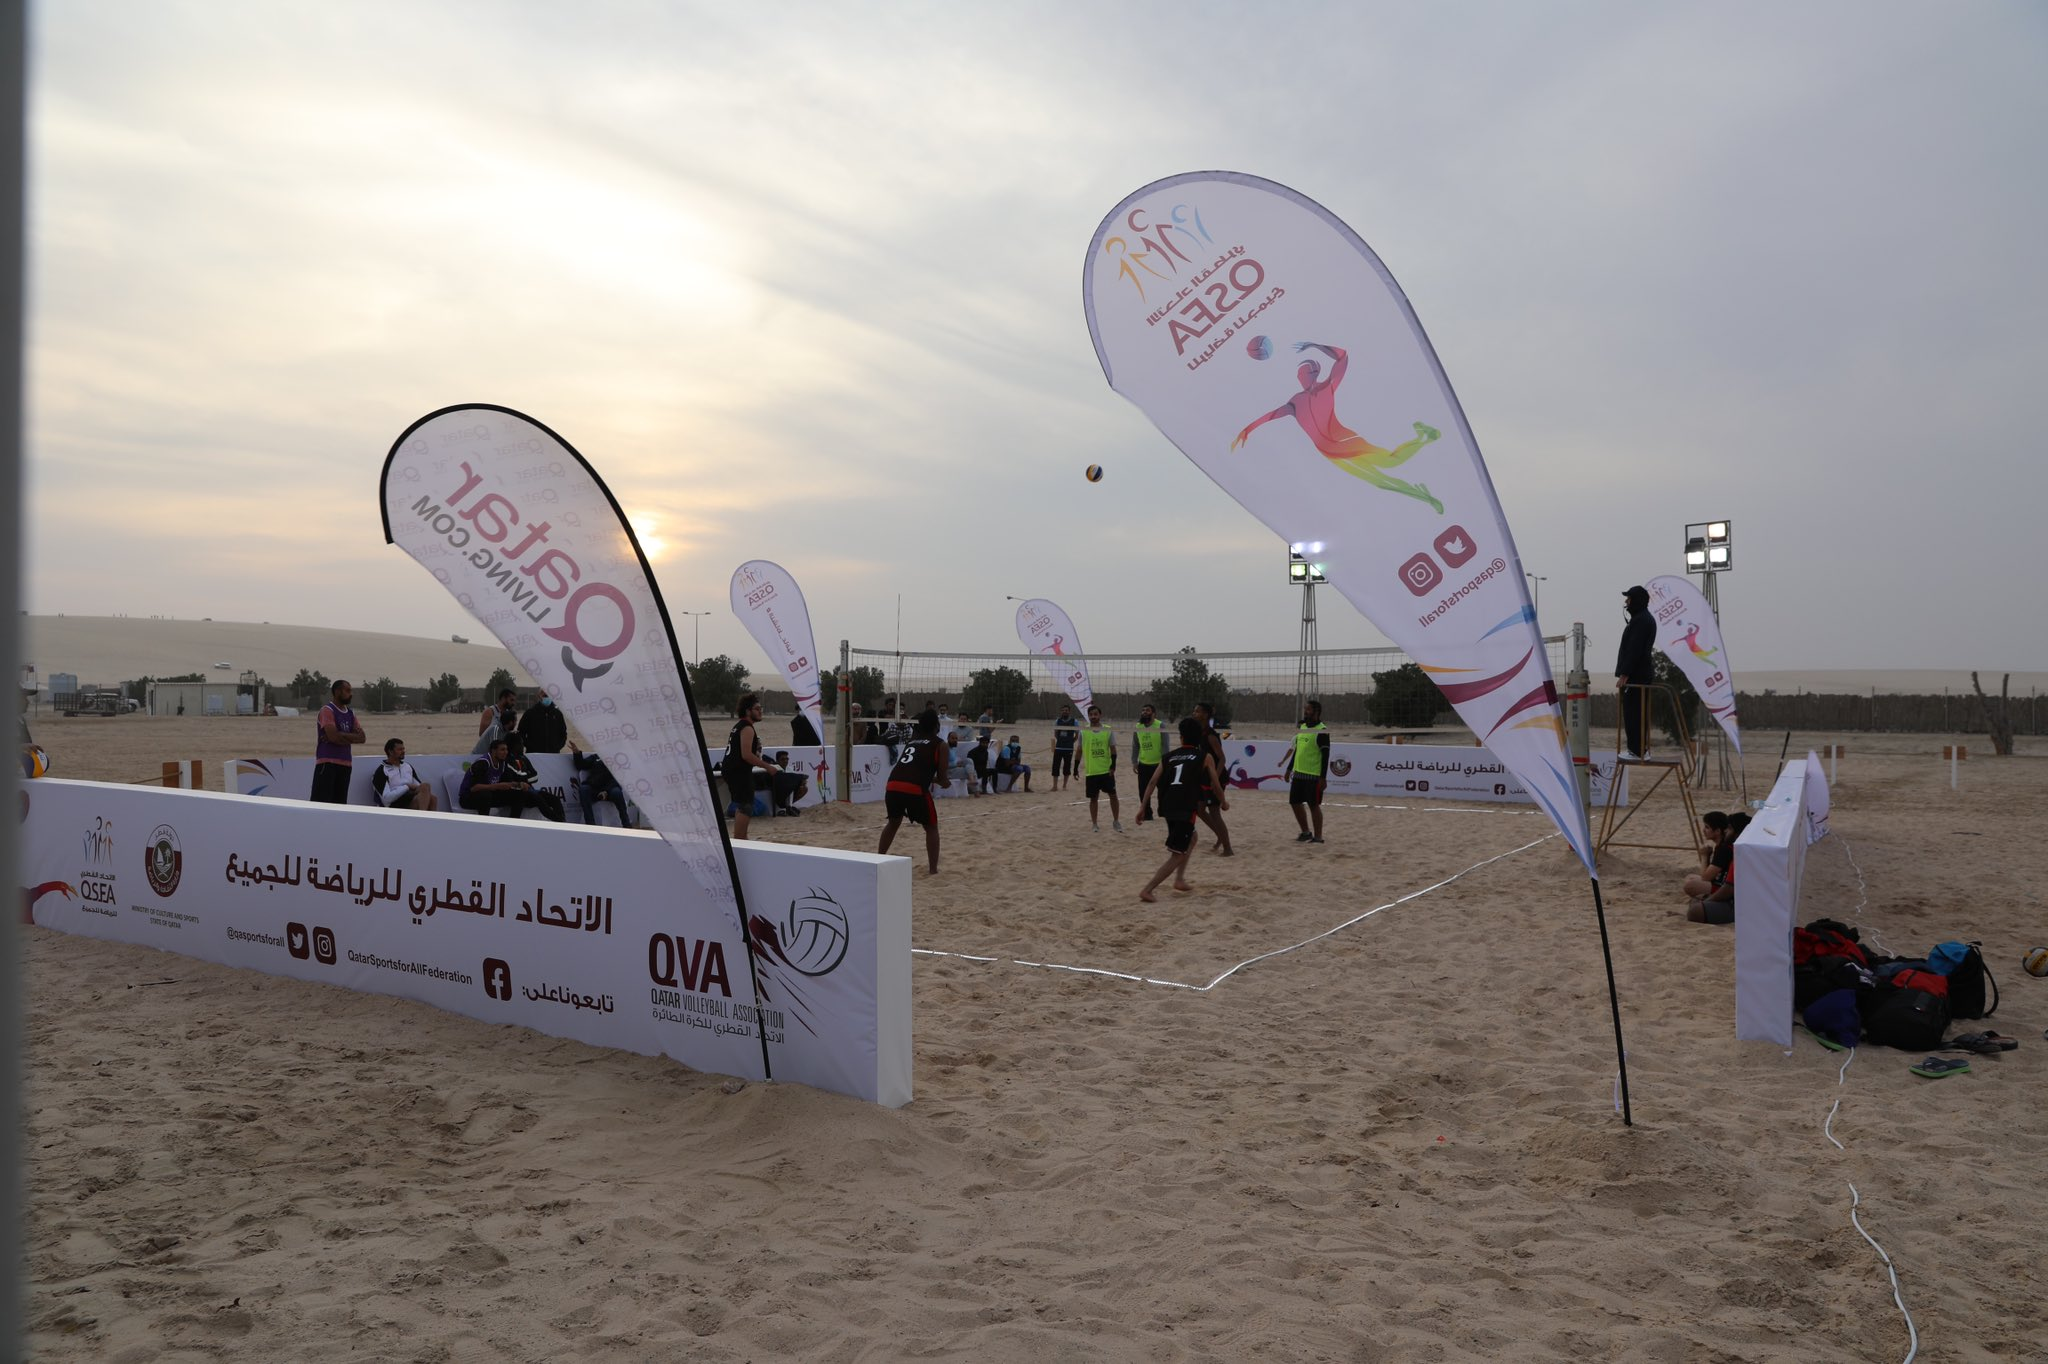 Minister of Culture and Sports Opens Beach Tournament at Sealine